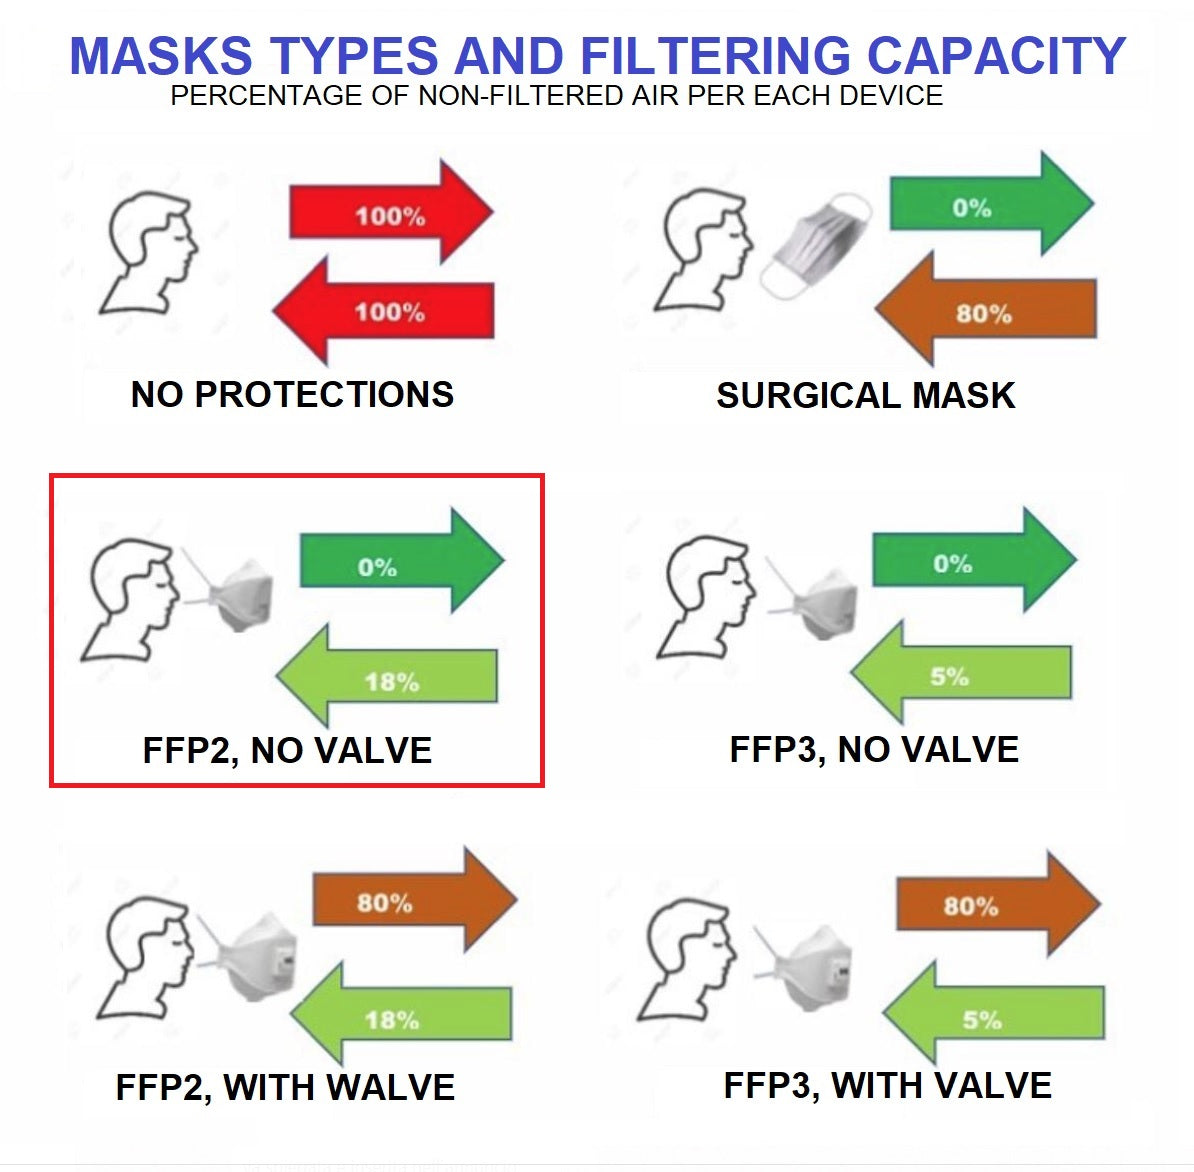 CE/FDA Certified FFP2 KN95 Face Mask EN 149:2001 + A1:2009 - pack of 10 - Switzerland only